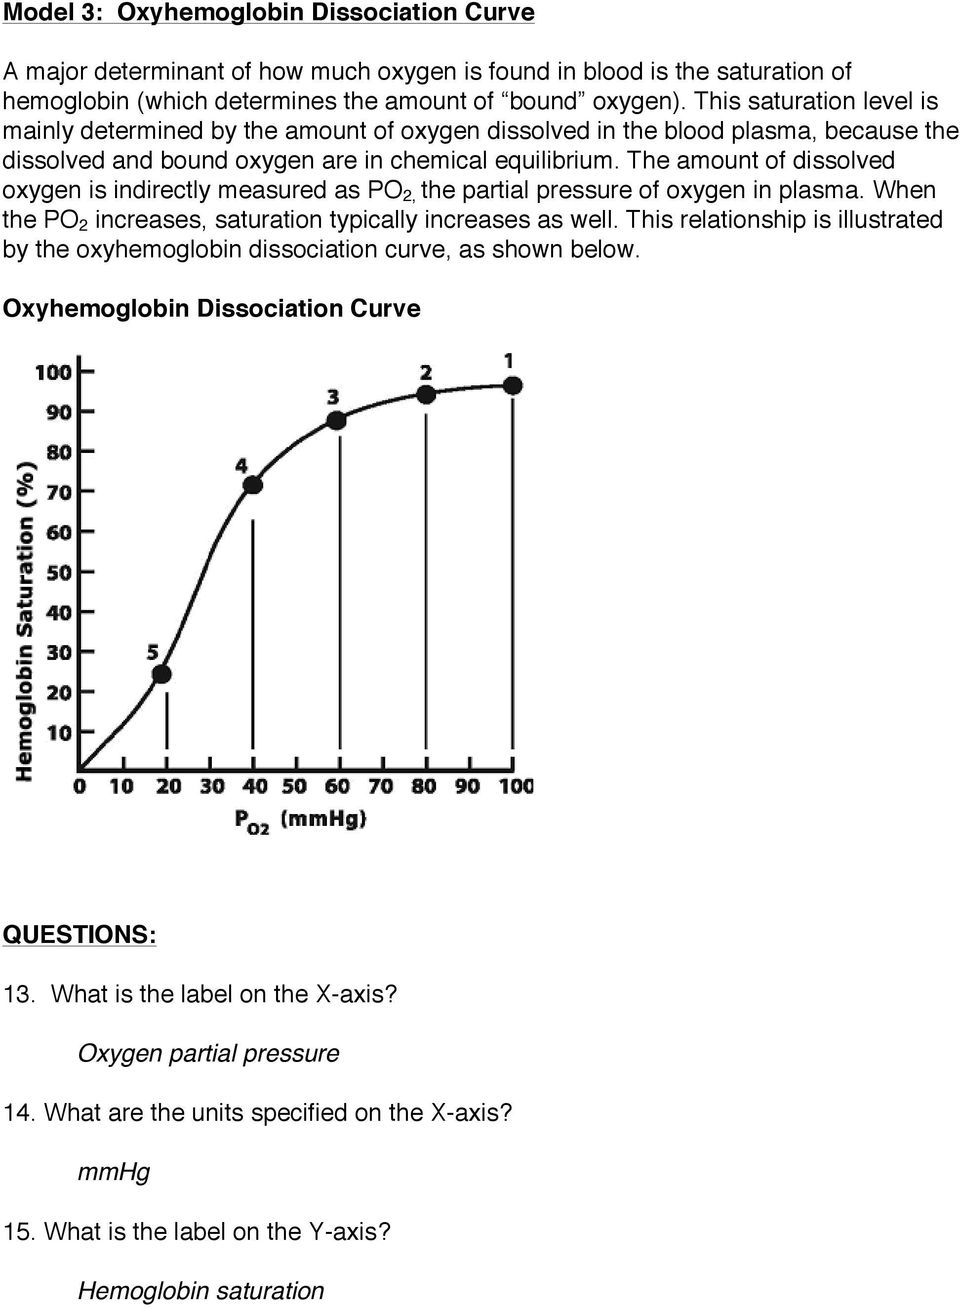 The amount of dissolved oxygen is indirectly measured as PO 2, the partial pressure of oxygen in plasma. When the PO 2 increases, saturation typically increases as well.